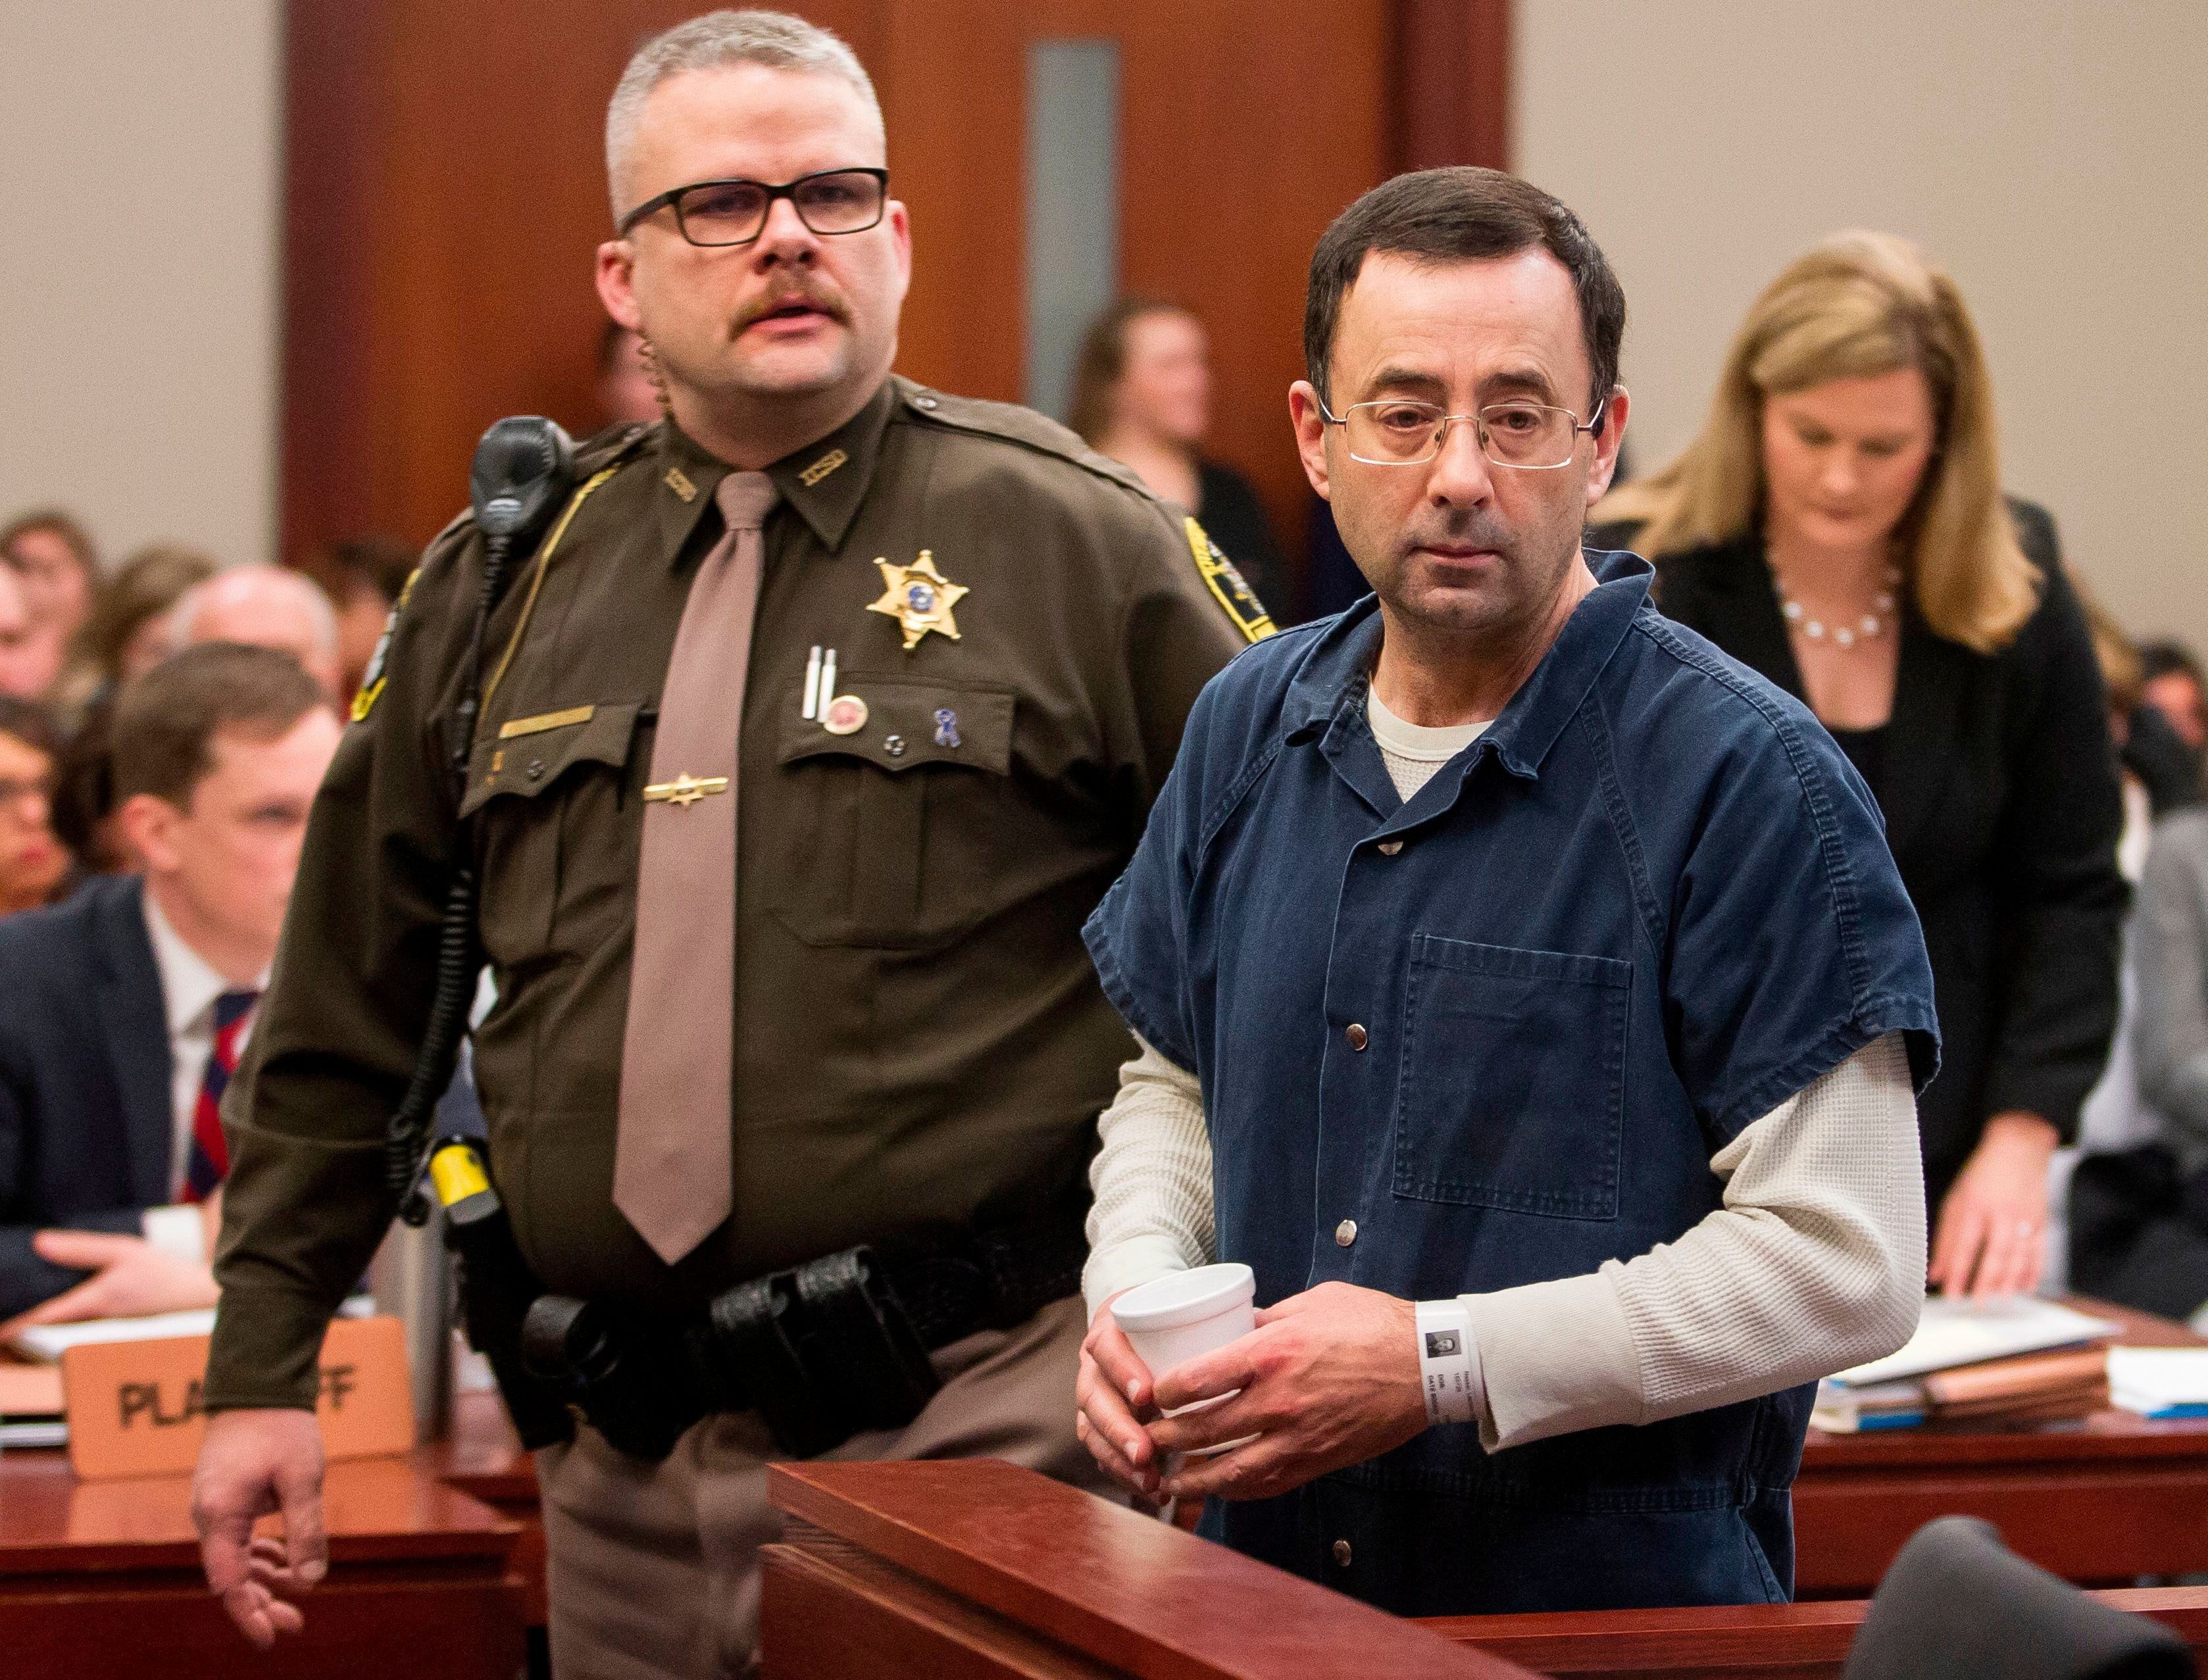 Nassar is led to the witness box during a sentence hearing in Lansing, Michigan, on Jan. 16, 2018.